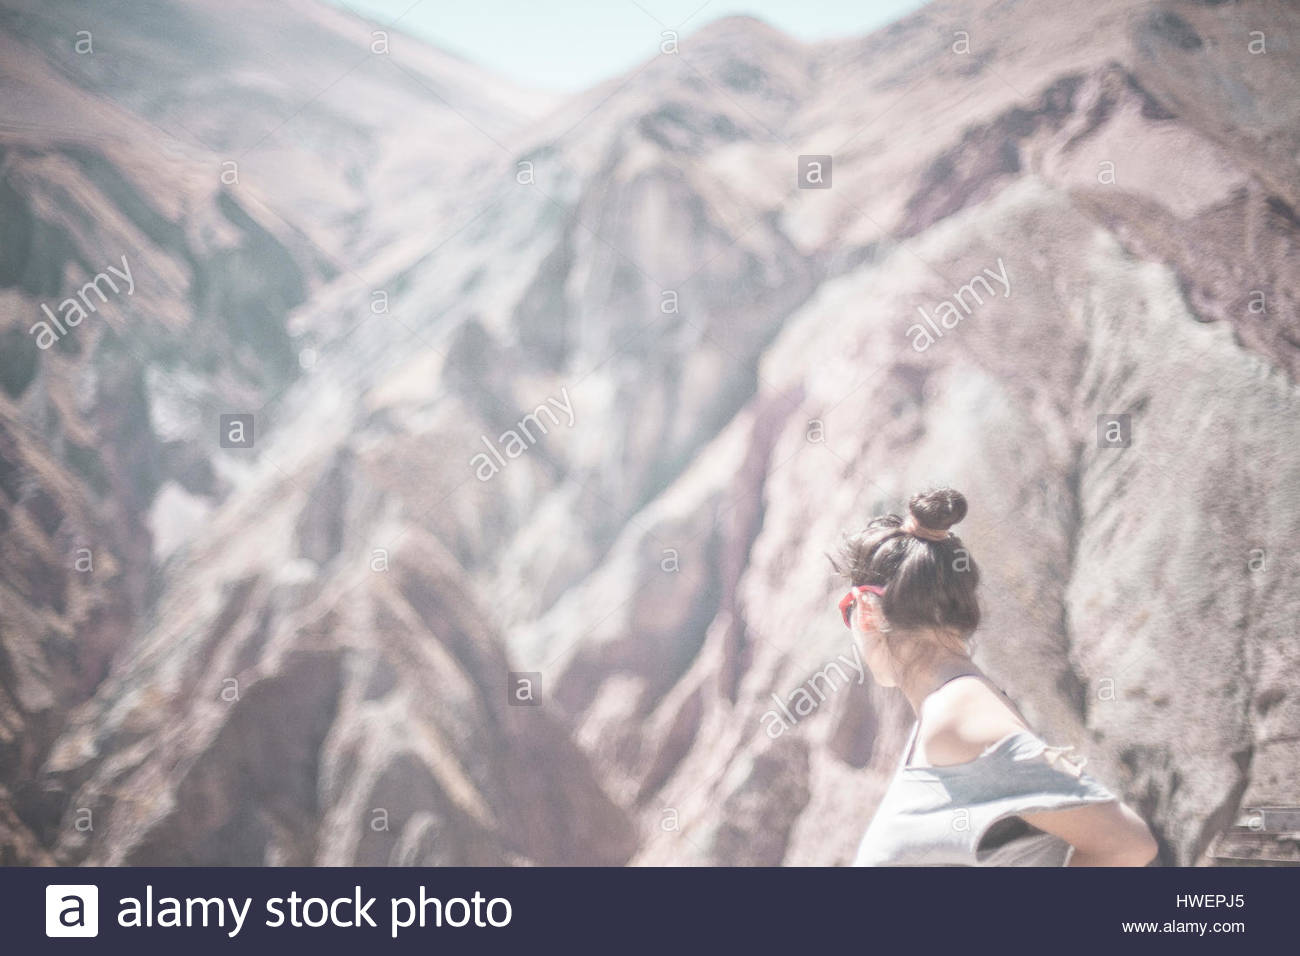 Female tourist looking out over Serranía de Hornocal, Jujuy, Argentina - Stock Image